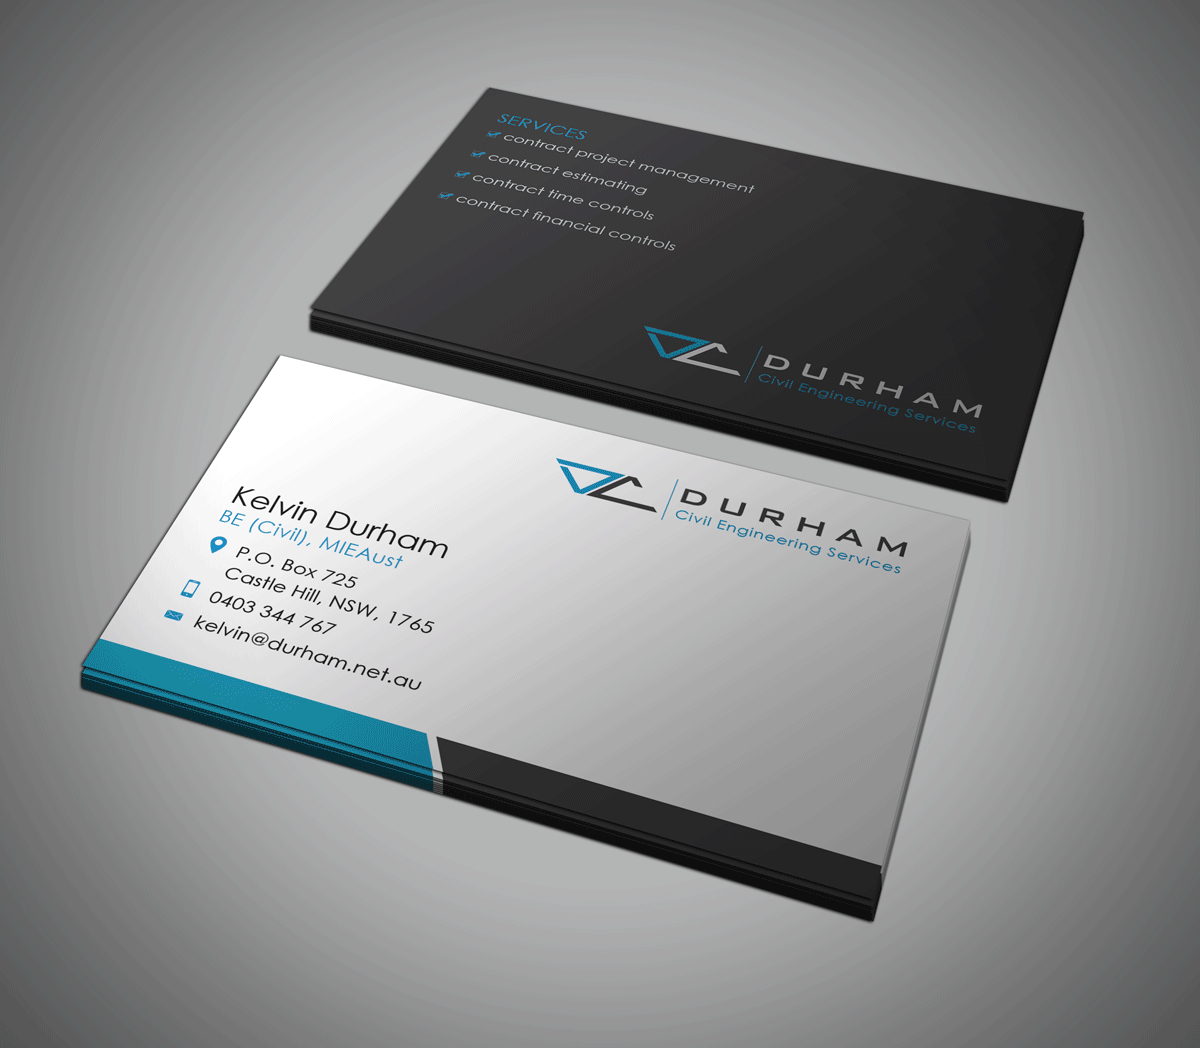 Stunning civil engineering business cards gallery business card business cards professional engineer choice image card design and reheart Gallery